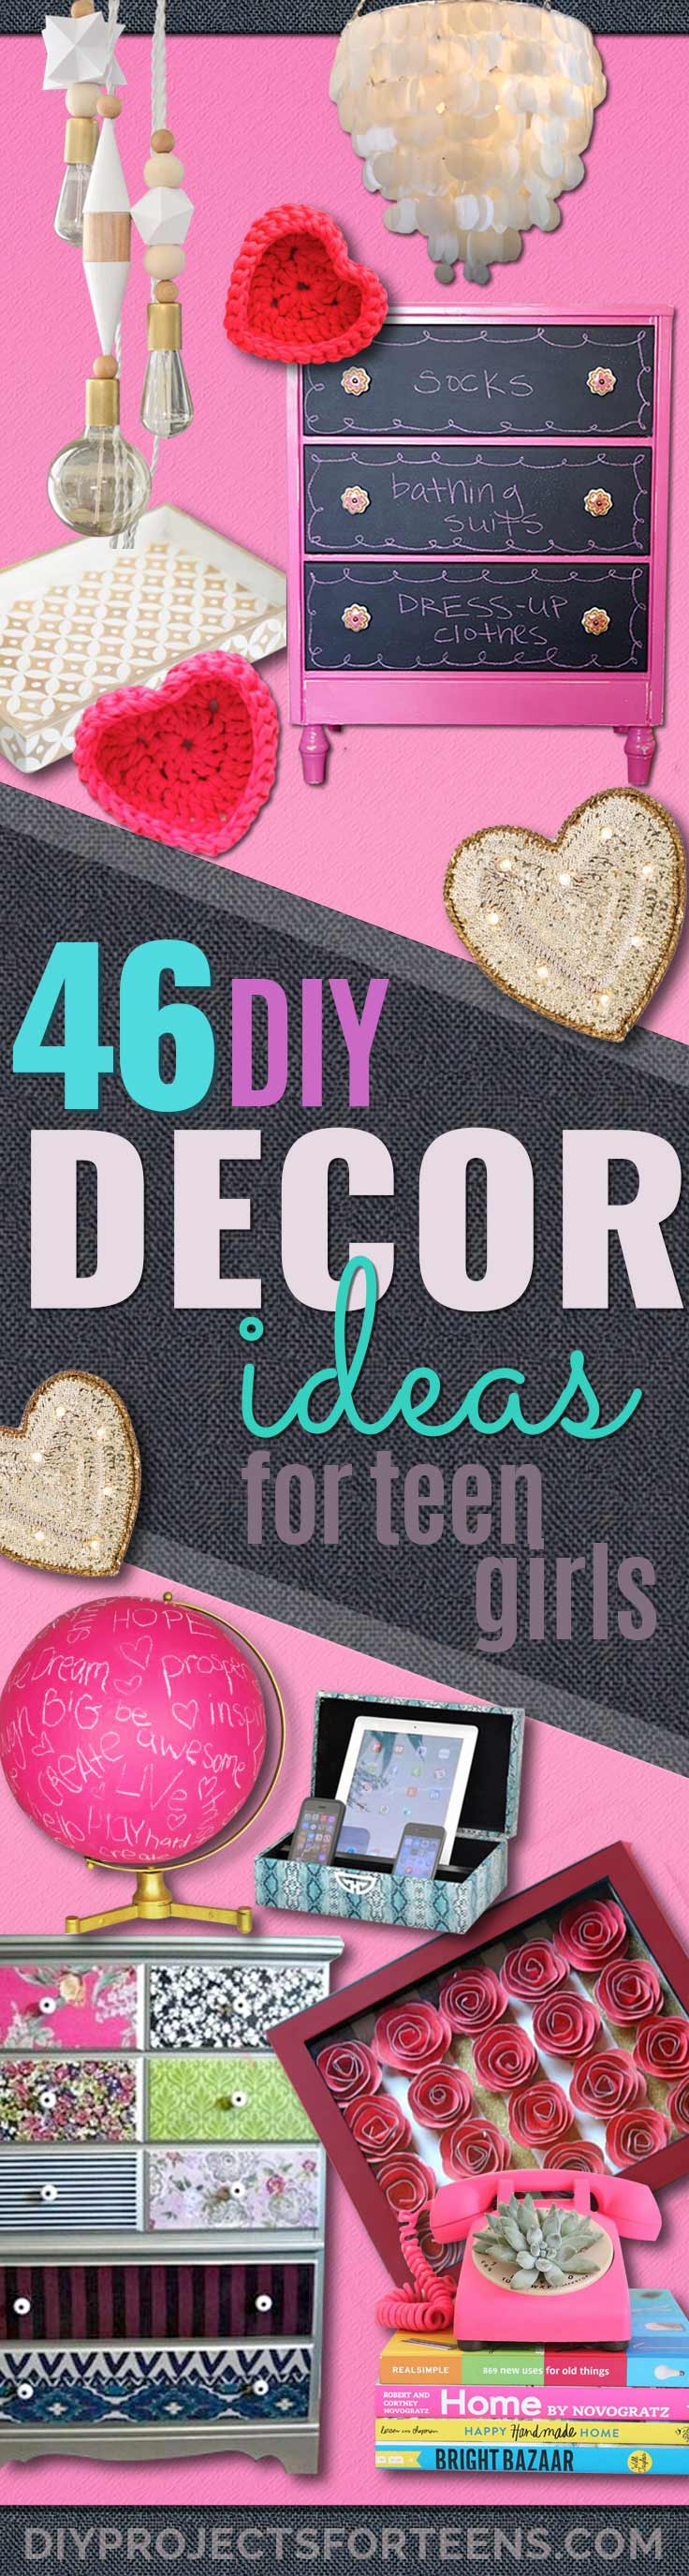 diy teen room decor ideas for girls fun crafts and decor for tweens cool - Girl Bedroom Decor Ideas